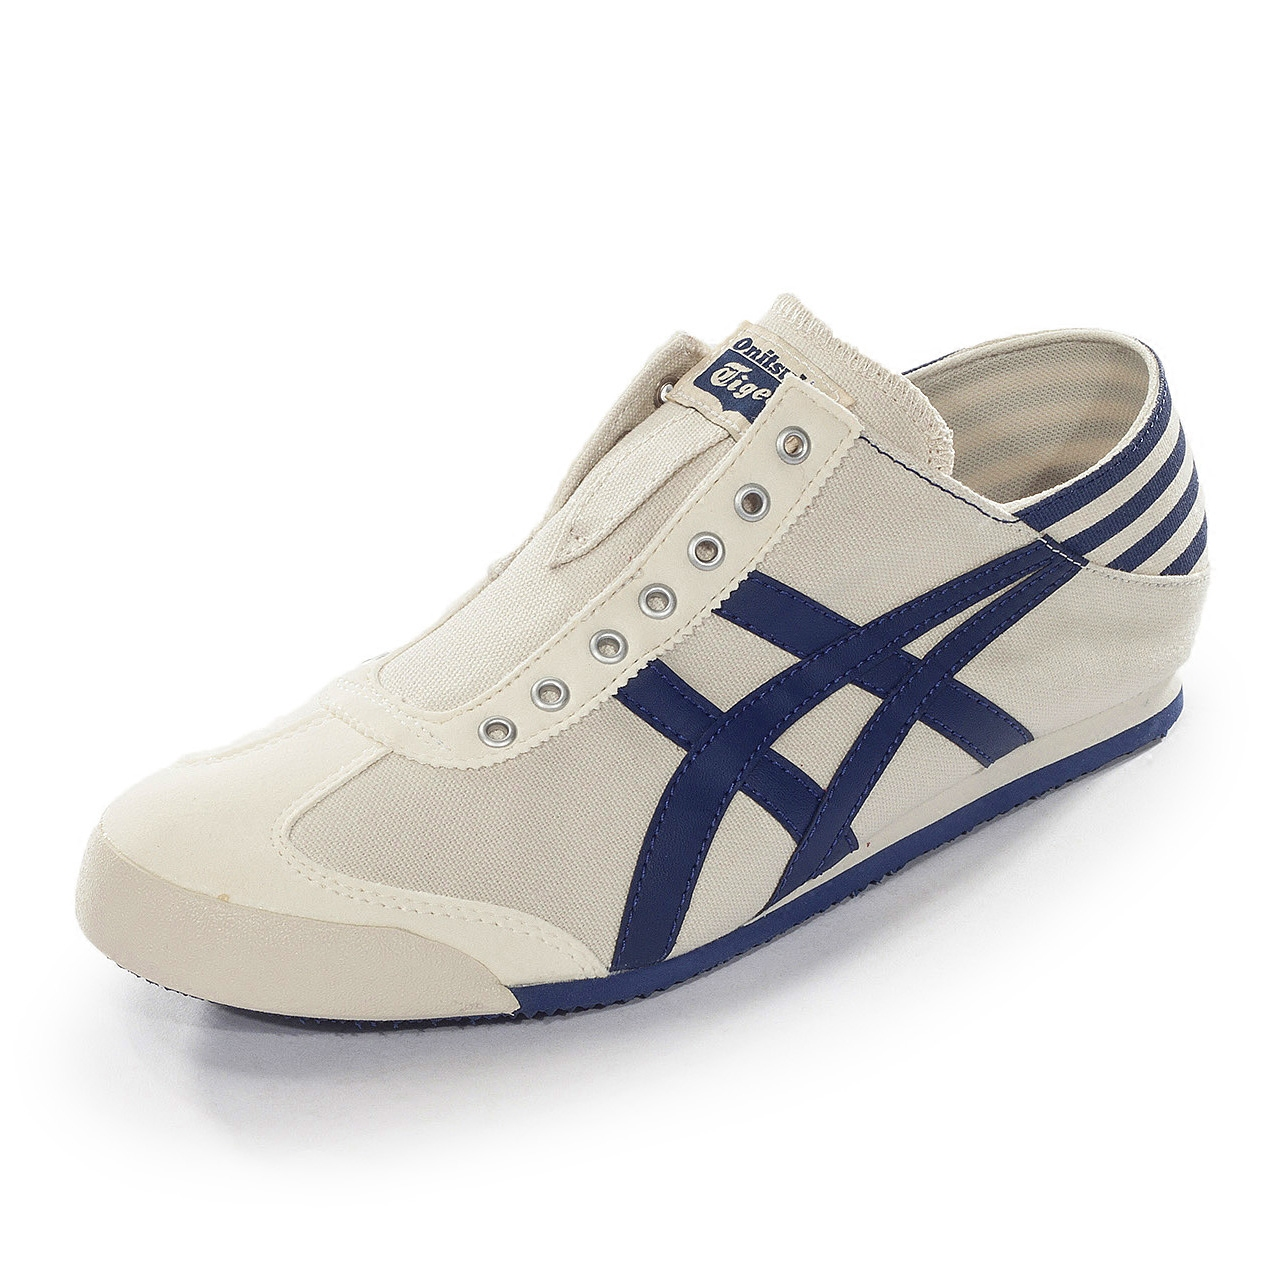 sale retailer 51bff a5019 Onitsuka Tiger Ghosts and Men's Shoes Yaseshi Flagship One ...